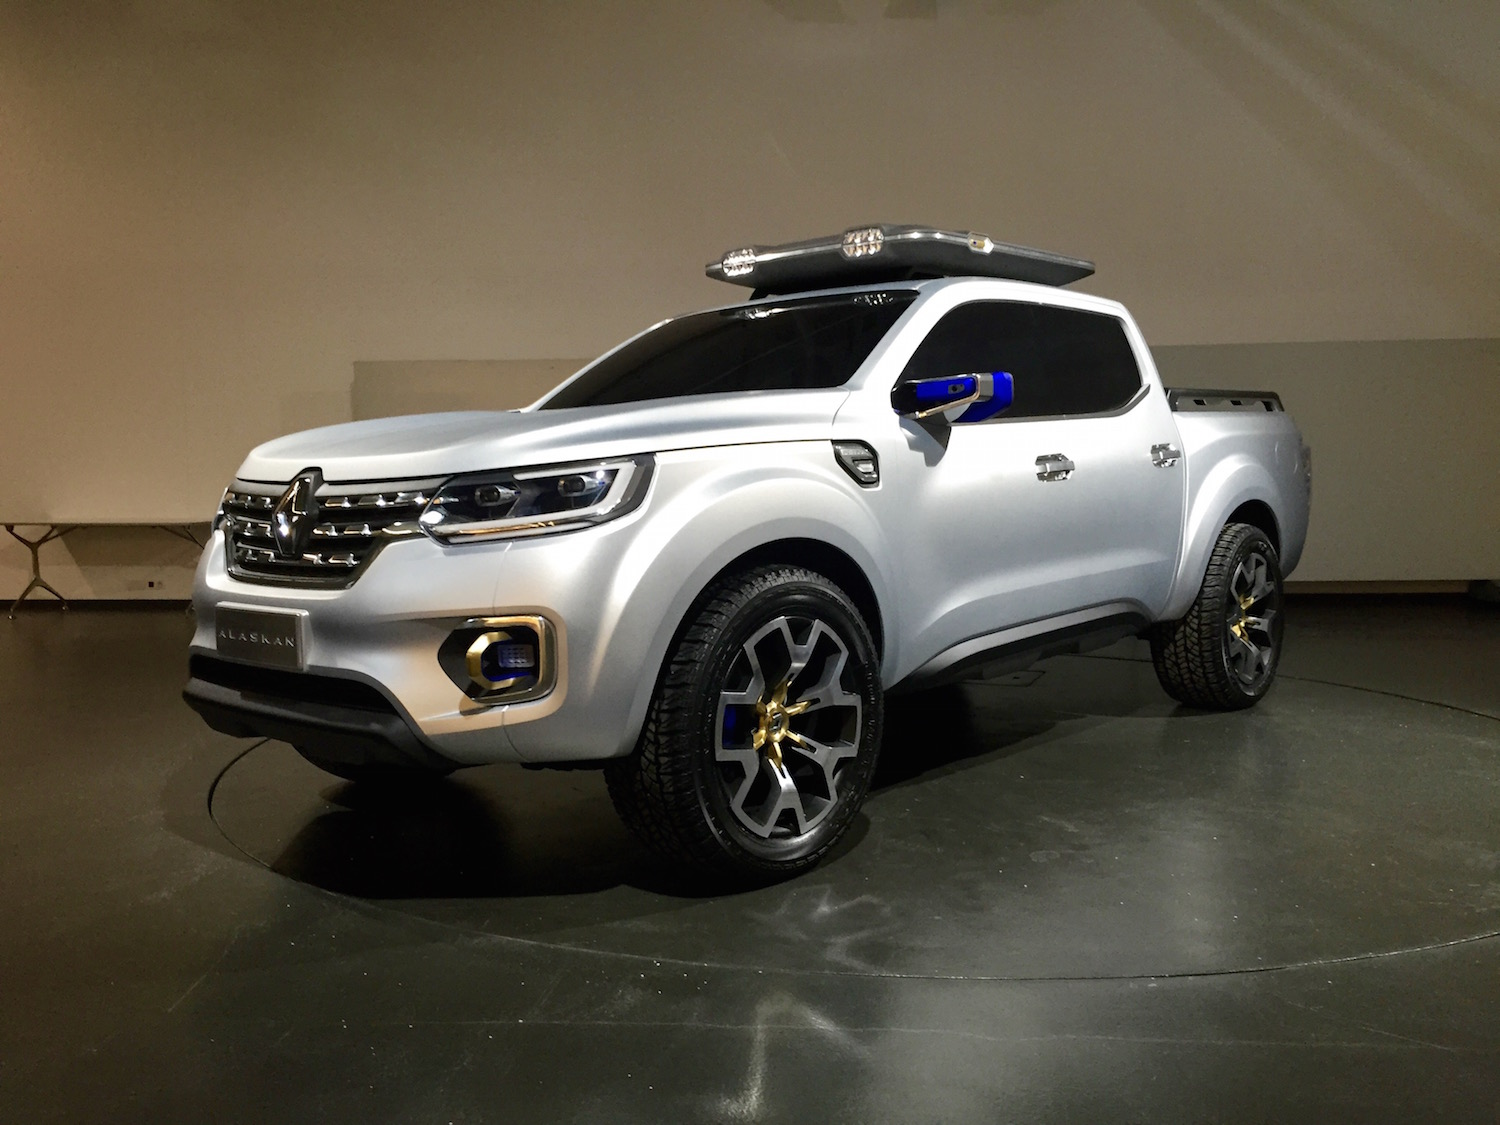 Renault Alaskan Ute Up Close And Personal With The French